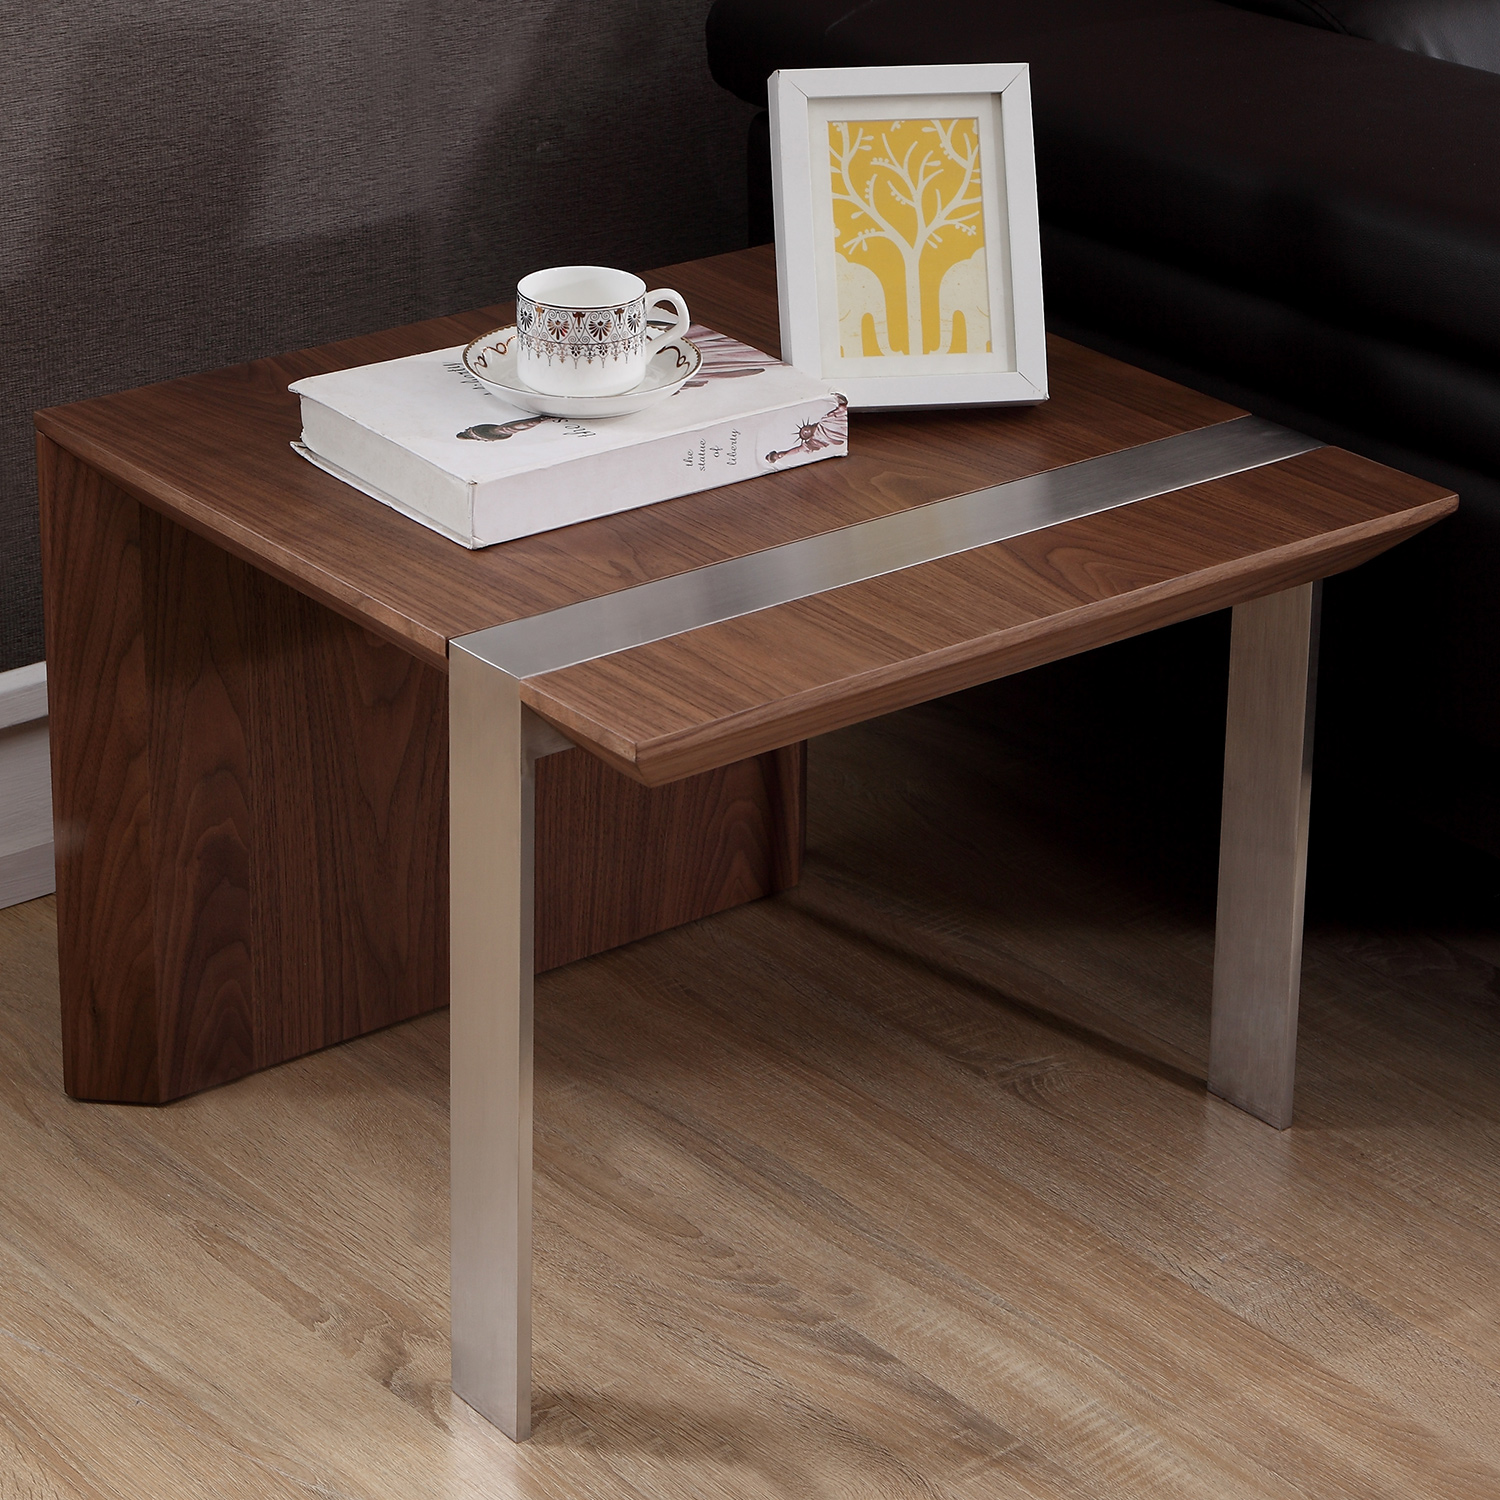 B modern bm 420 brn s director end table in light walnut brushed stainless steel